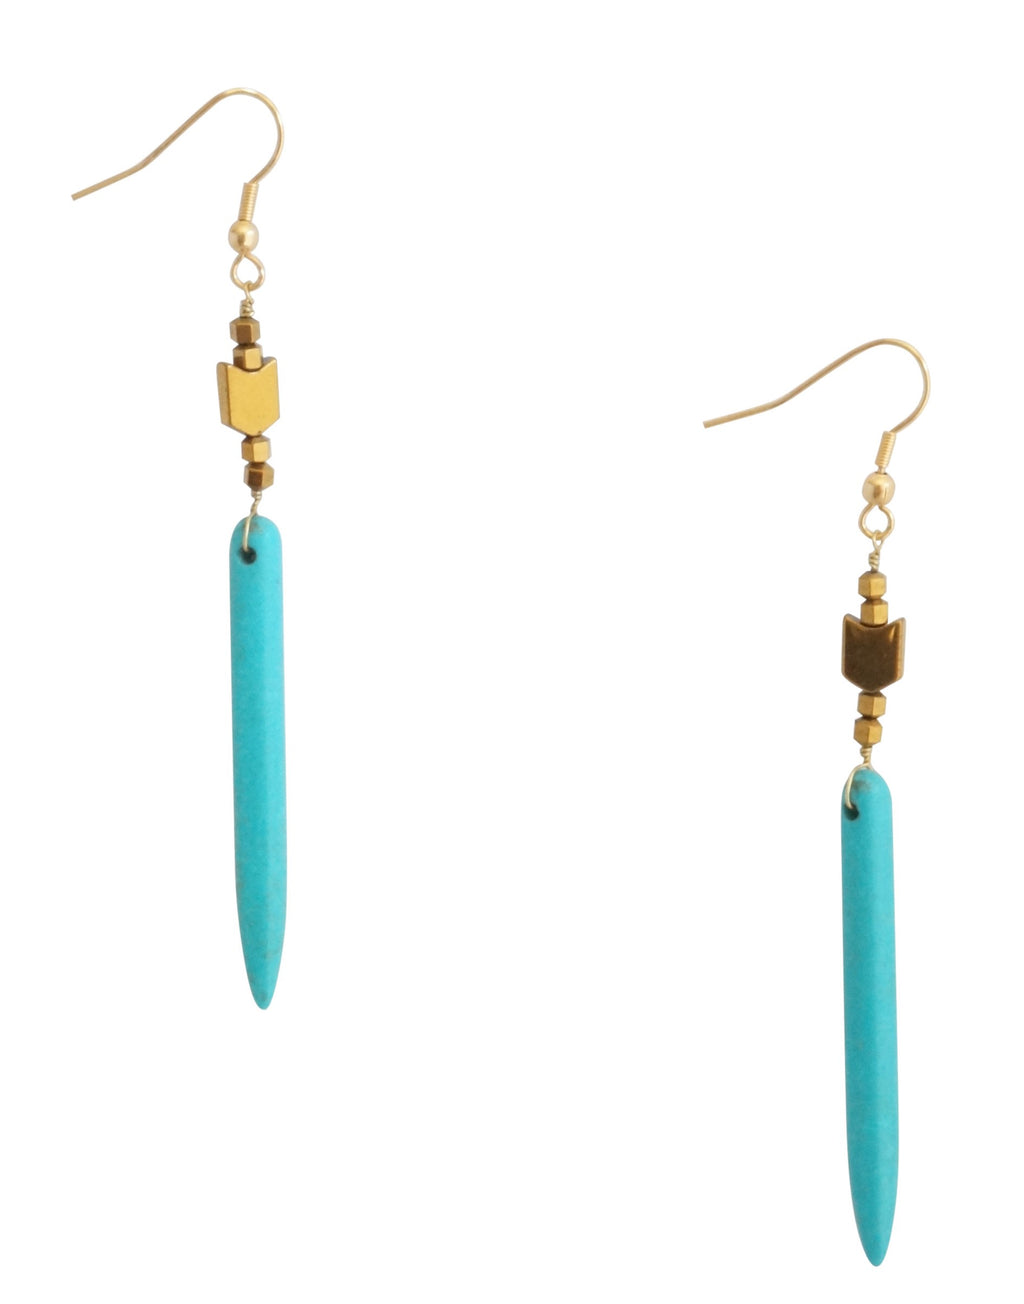 Encourage Earrings - Carolyn Hearn Designs